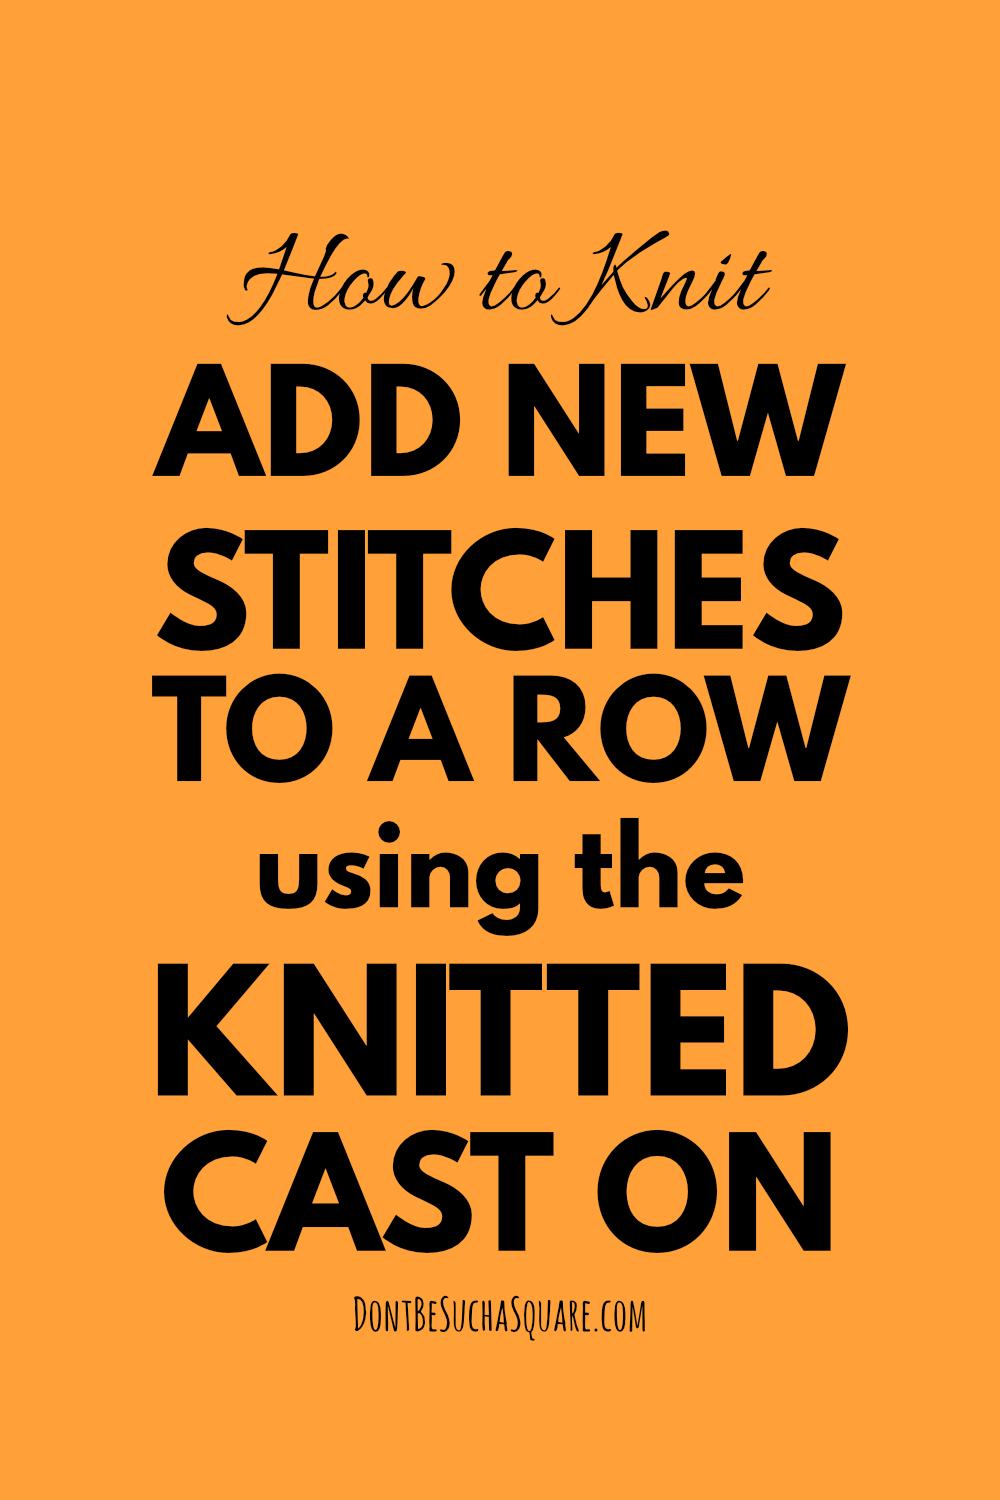 The knitted cast on is easy to remeber and can be used both for adding stitches in the middle of a row and for starting new projects. #knitting #Caston #knittedcaston #addstitches